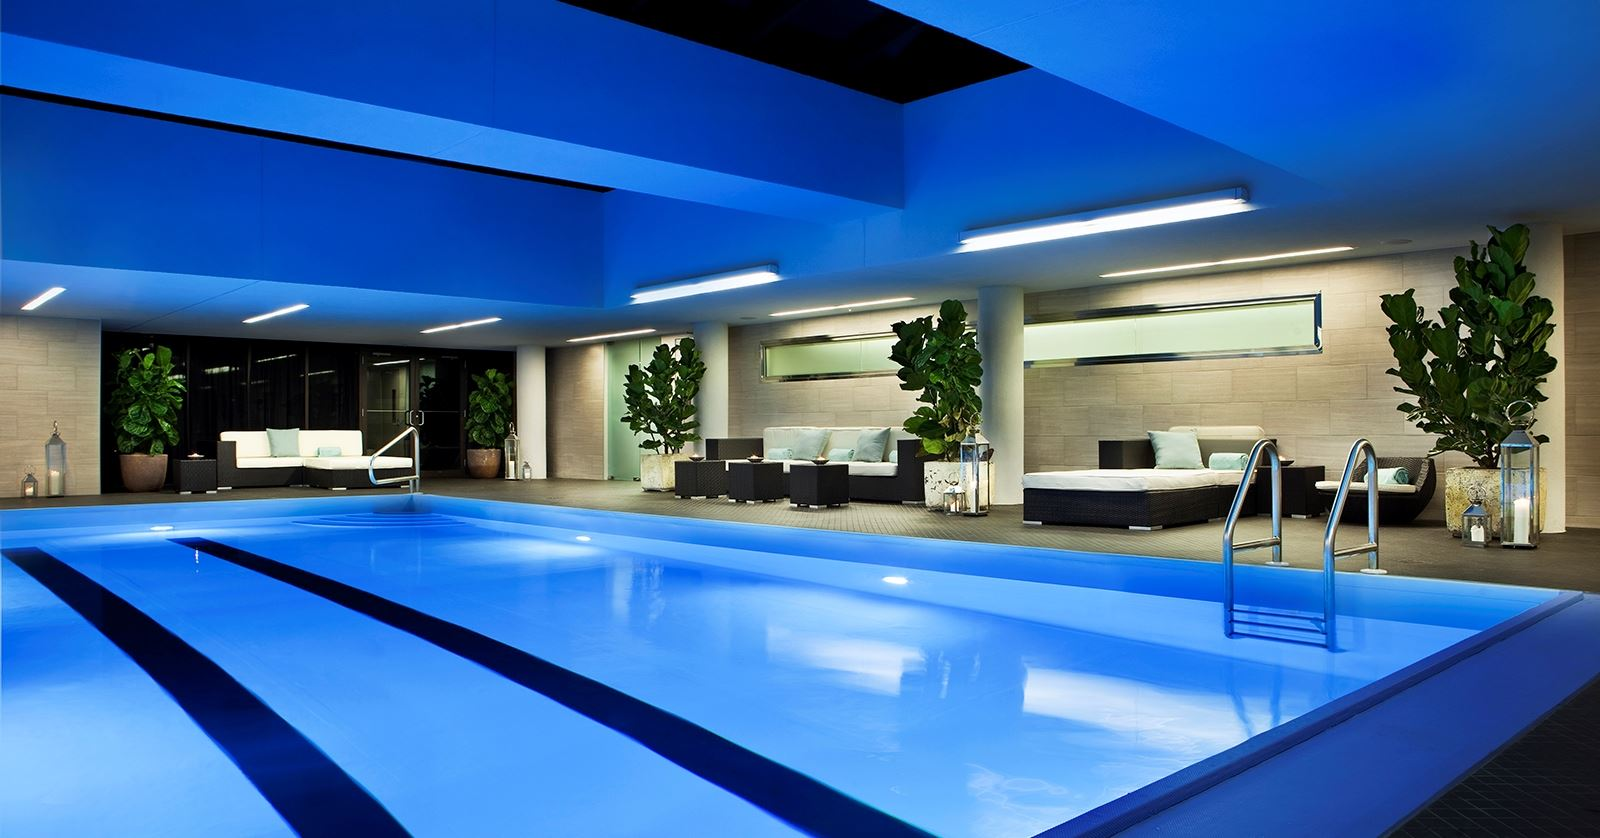 Renovated indoor pool at Rittenhouse Spa